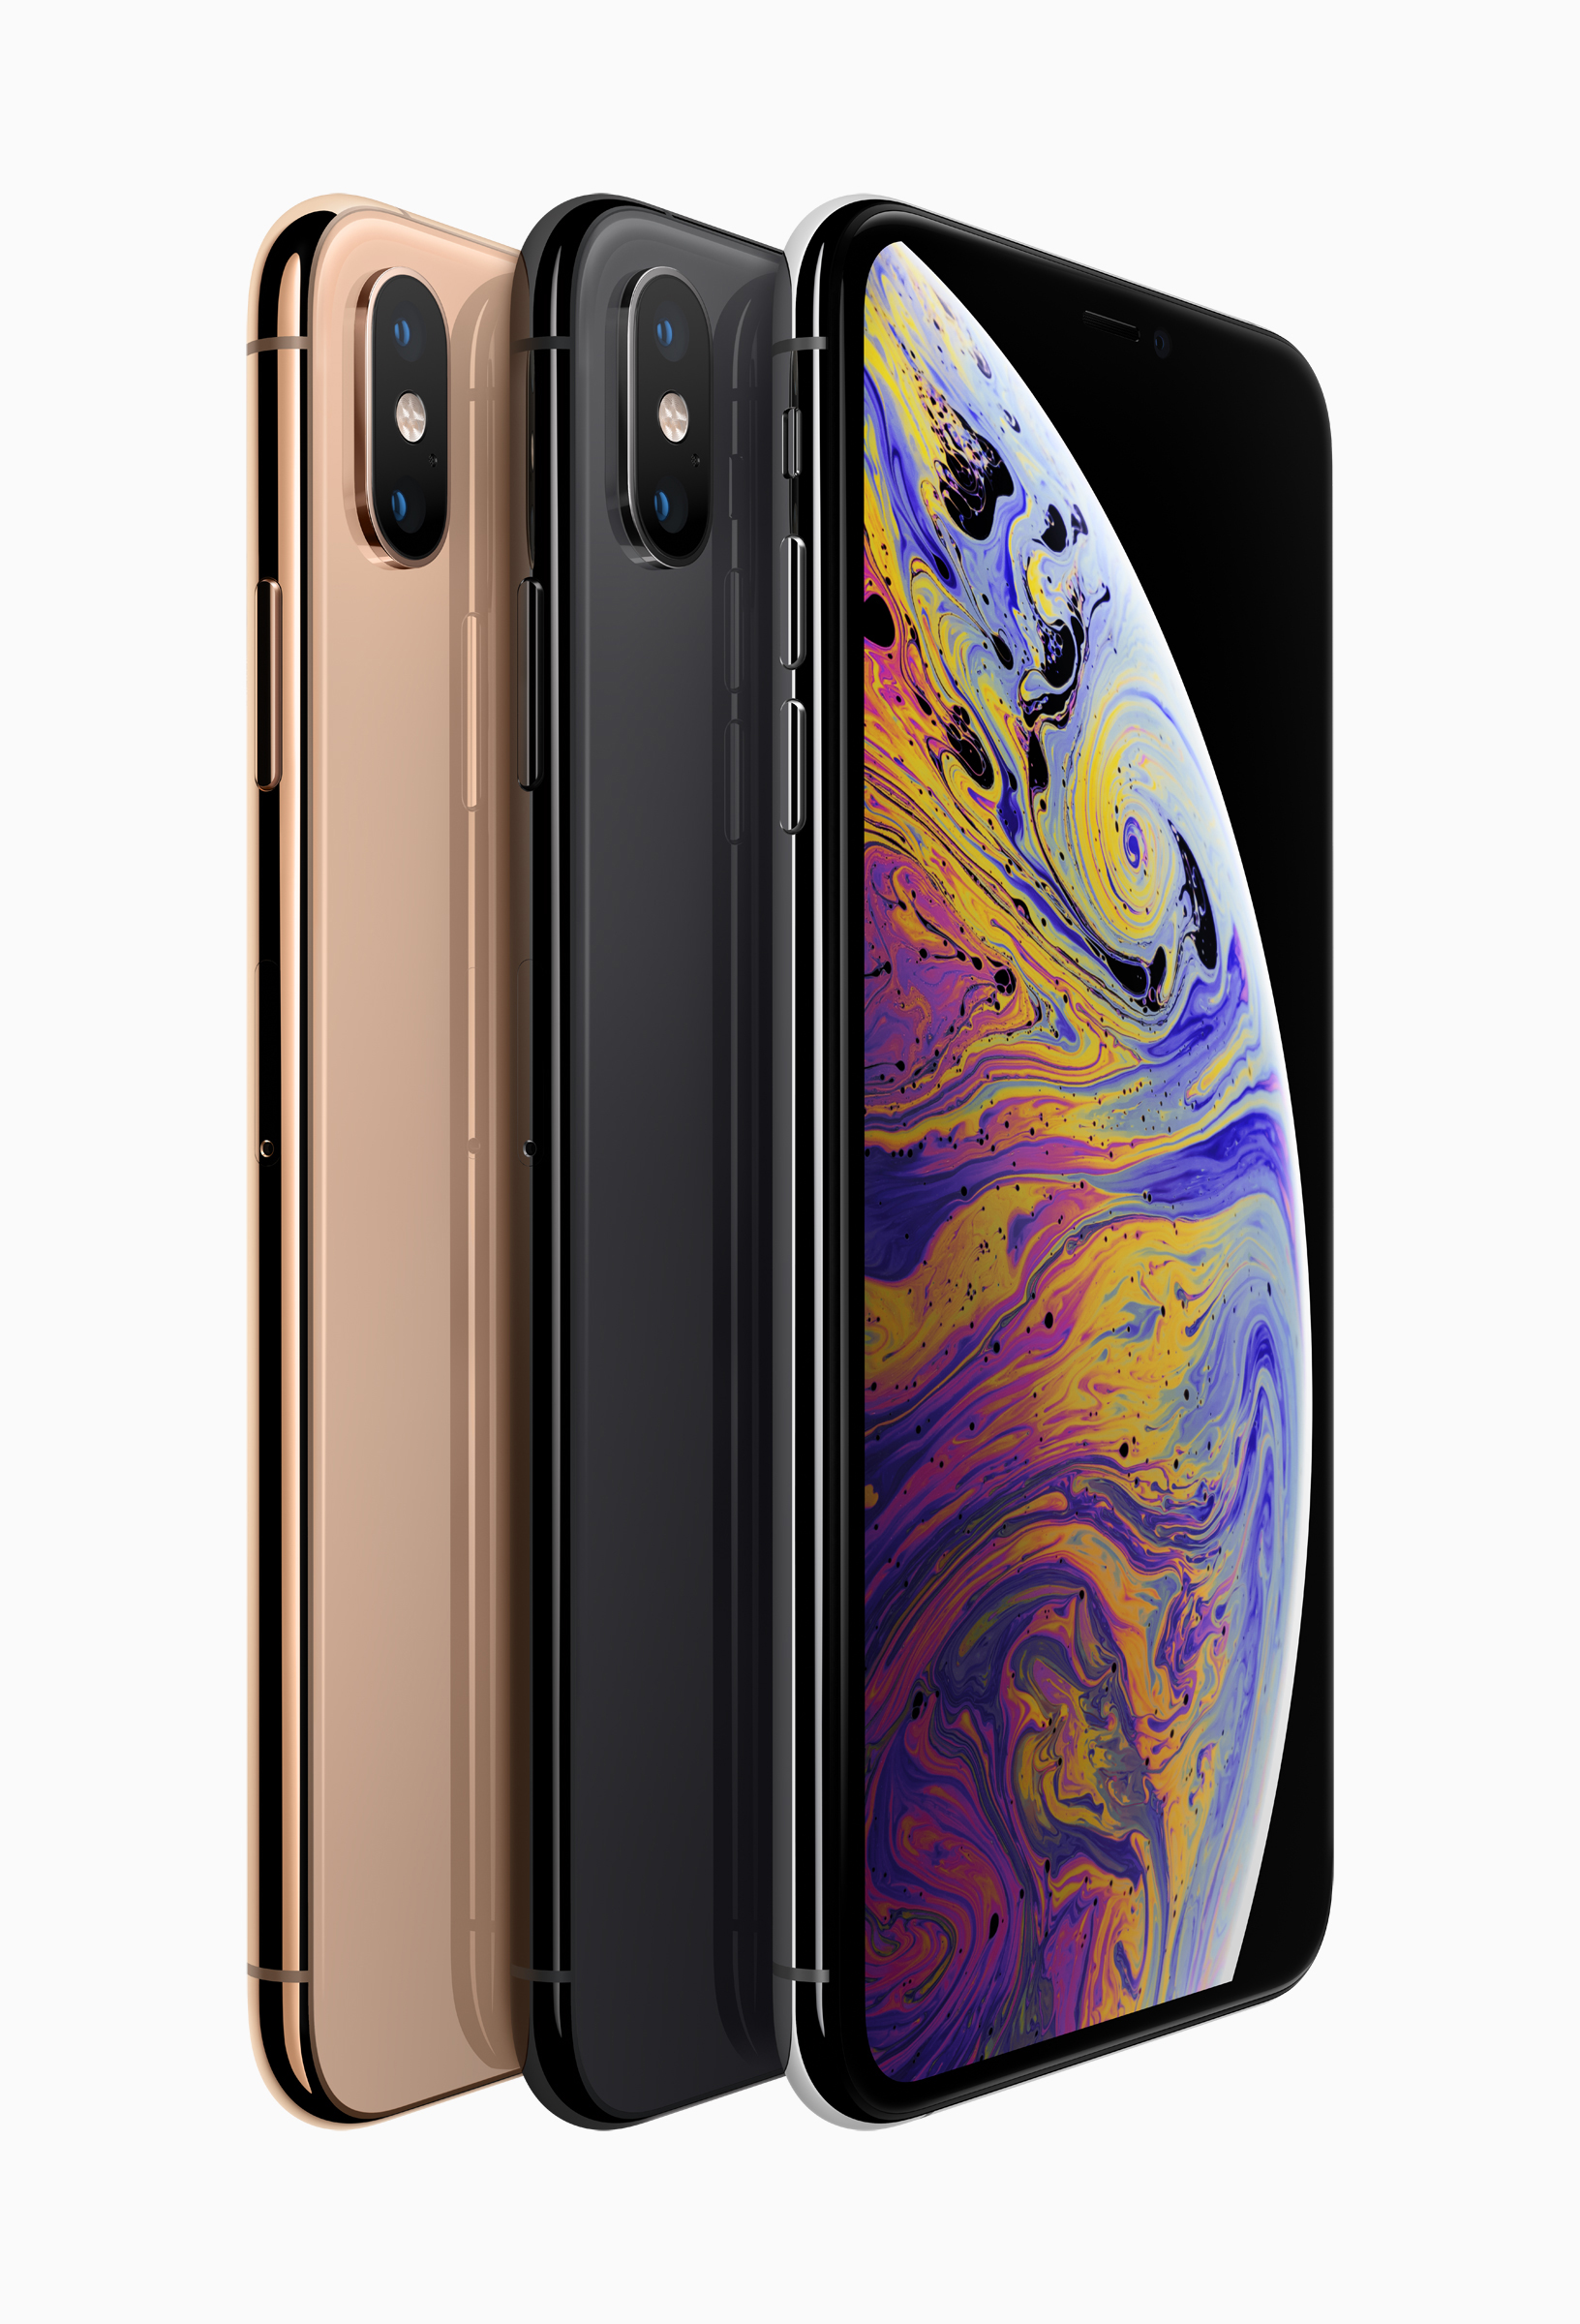 Premium Smartphone Group Test: Apple iPhone XS Max, Google Pixel 3XL